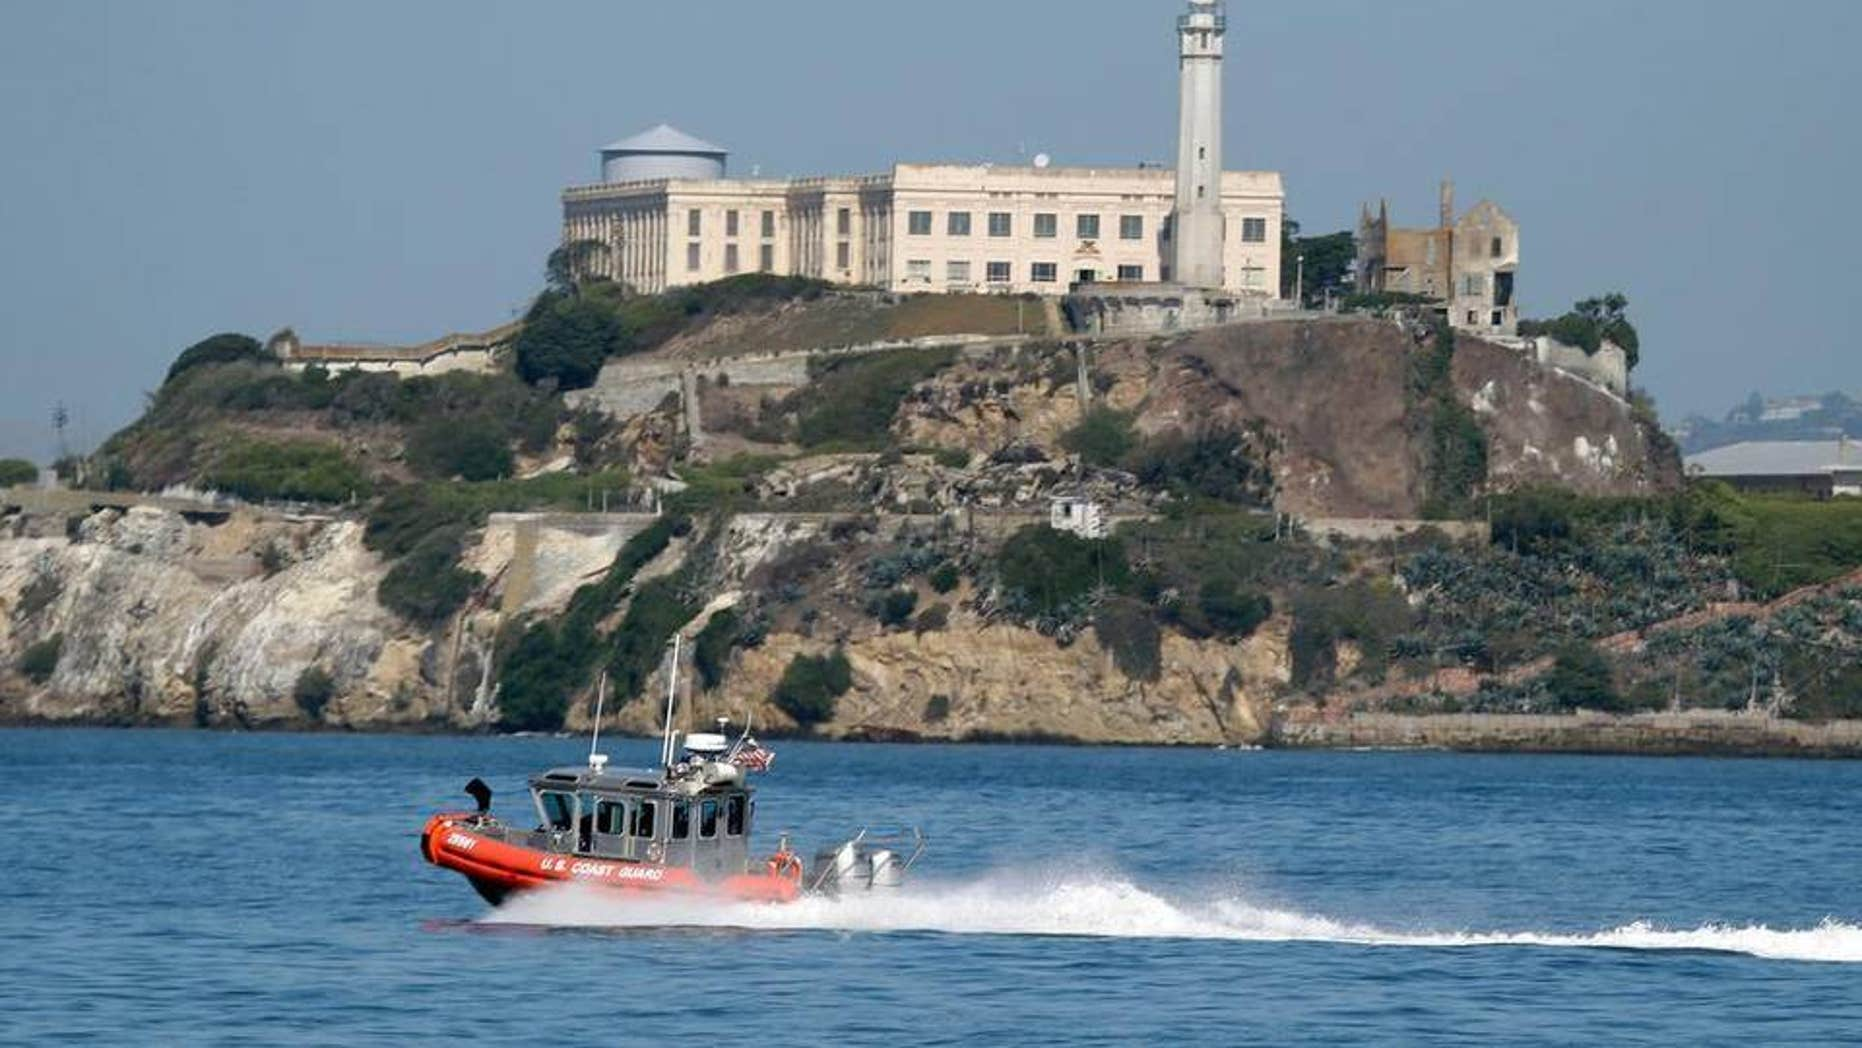 Alcatraz is seeking $250,000 to improve its famous guardhouse and surrounding park area.